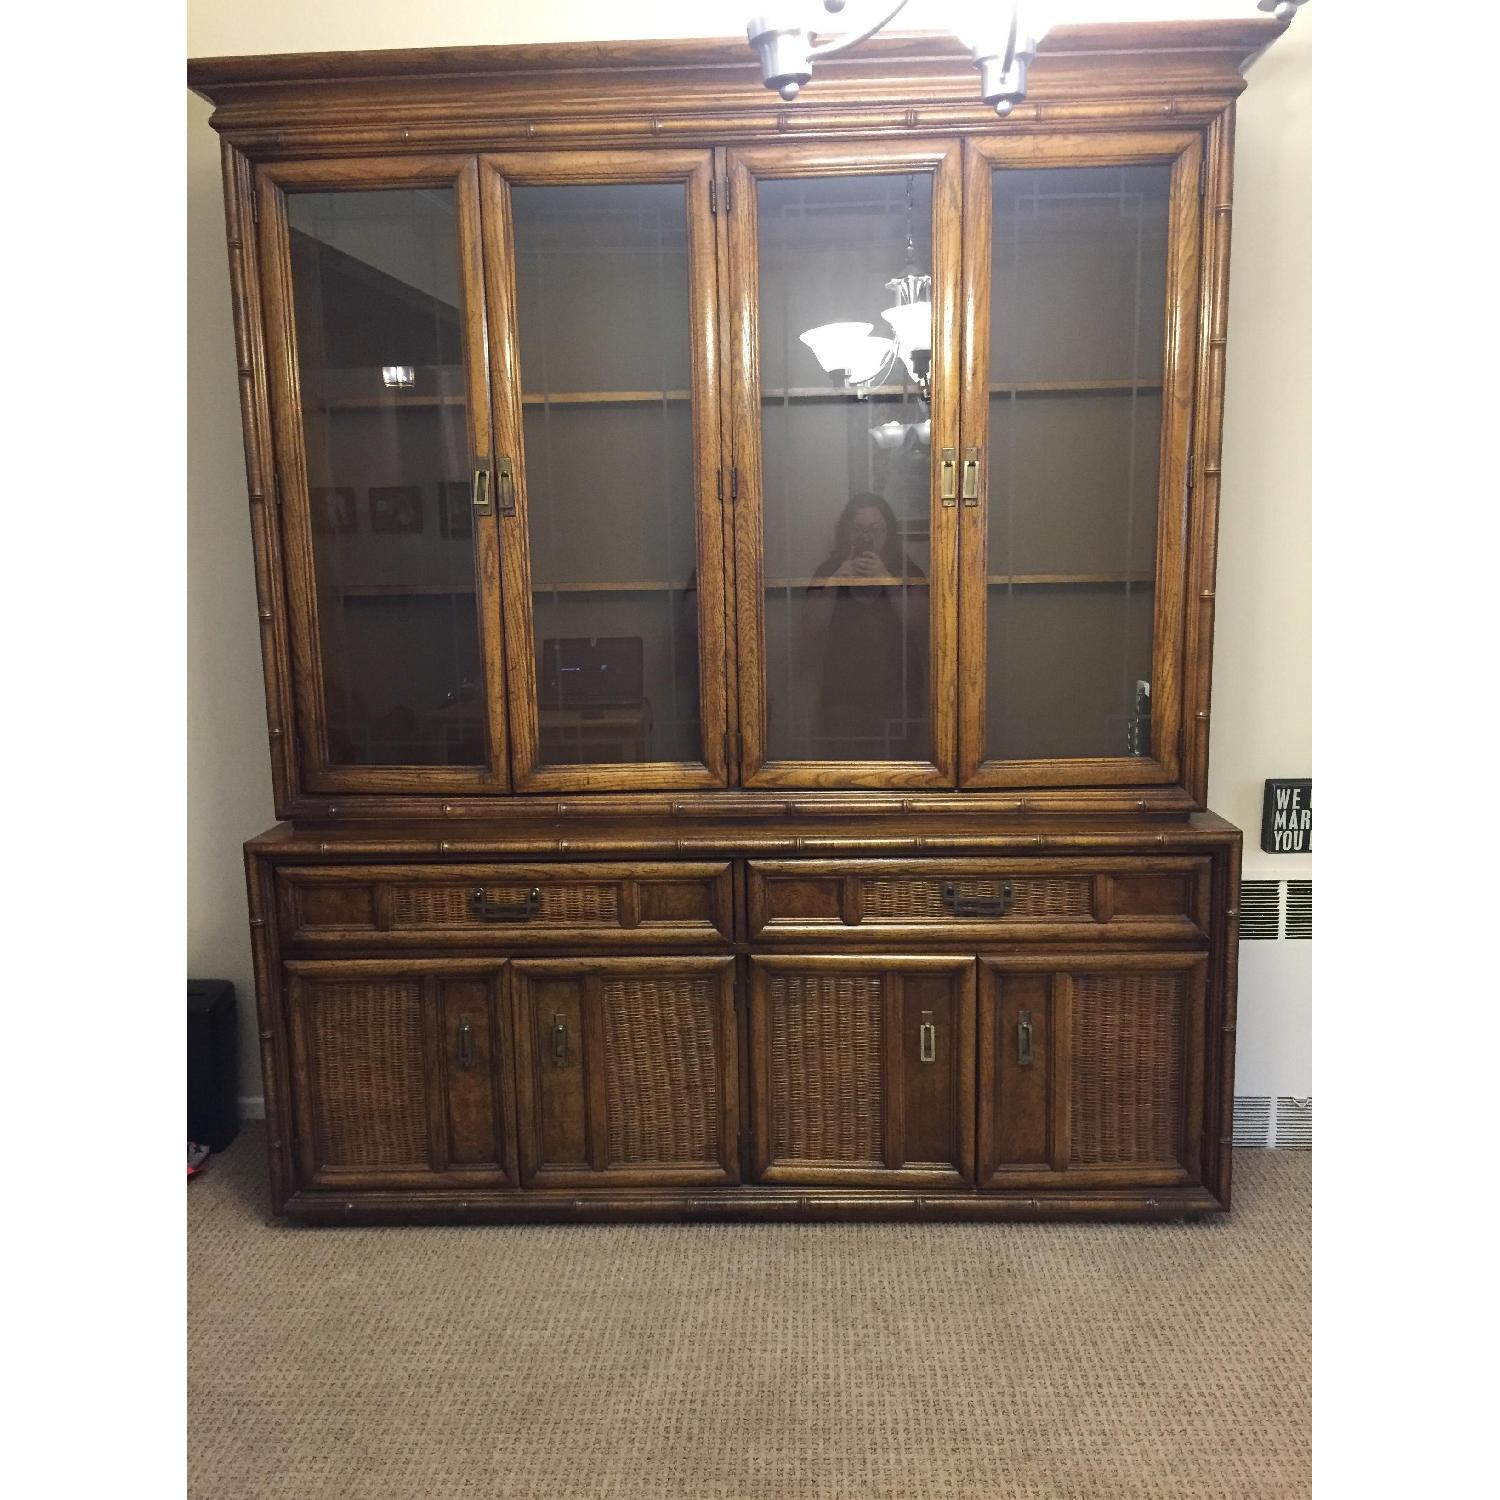 Large Dining Room China Cabinet - image-1